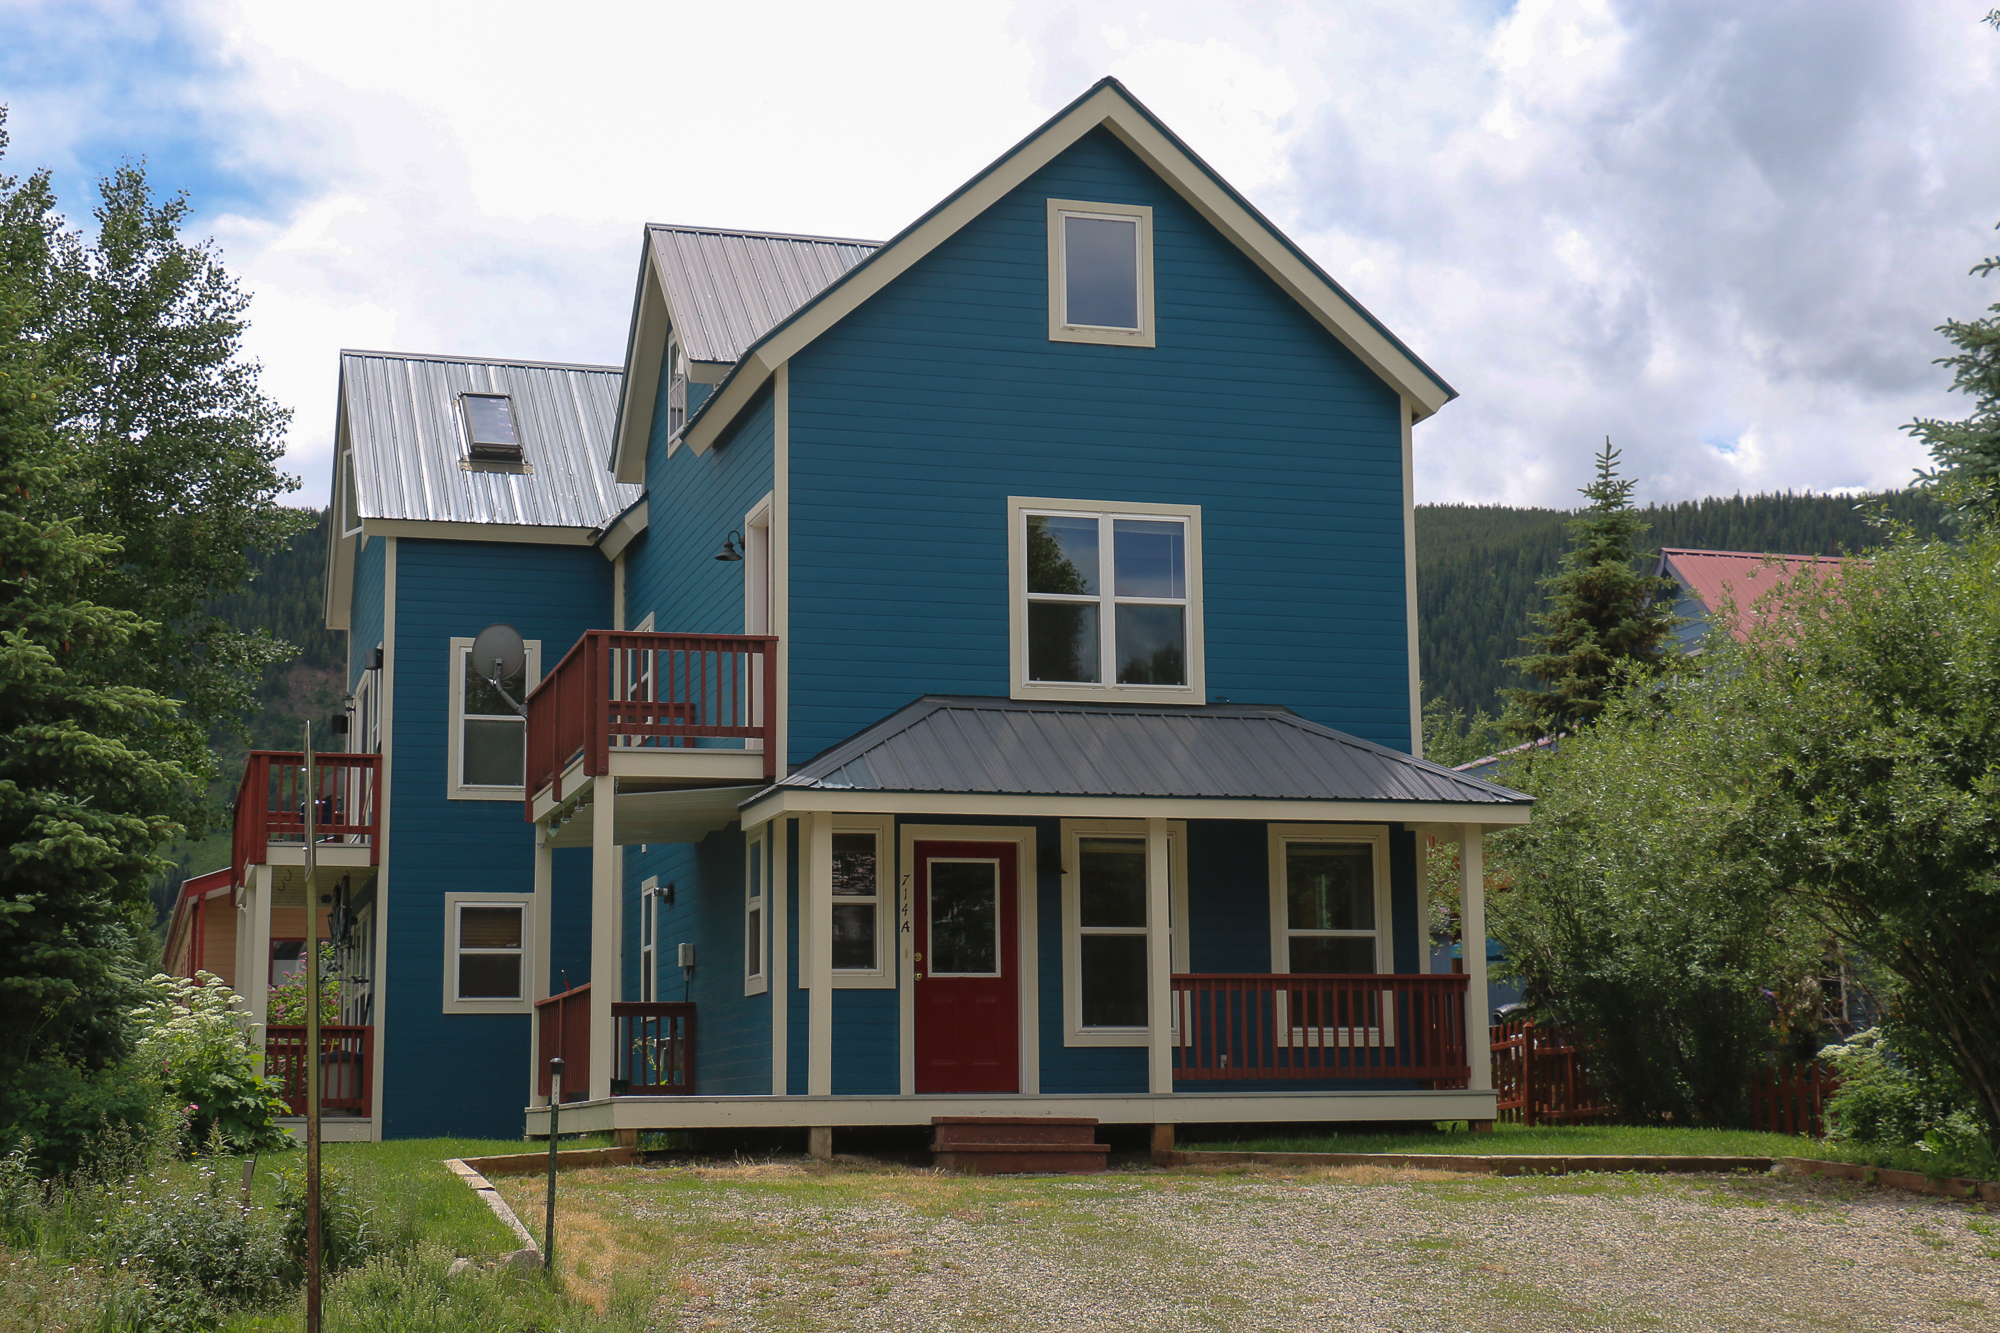 Townhouse for Sale at Newly Remodeled 714 Teocalli Ave #A Crested Butte, Colorado 81224 United States